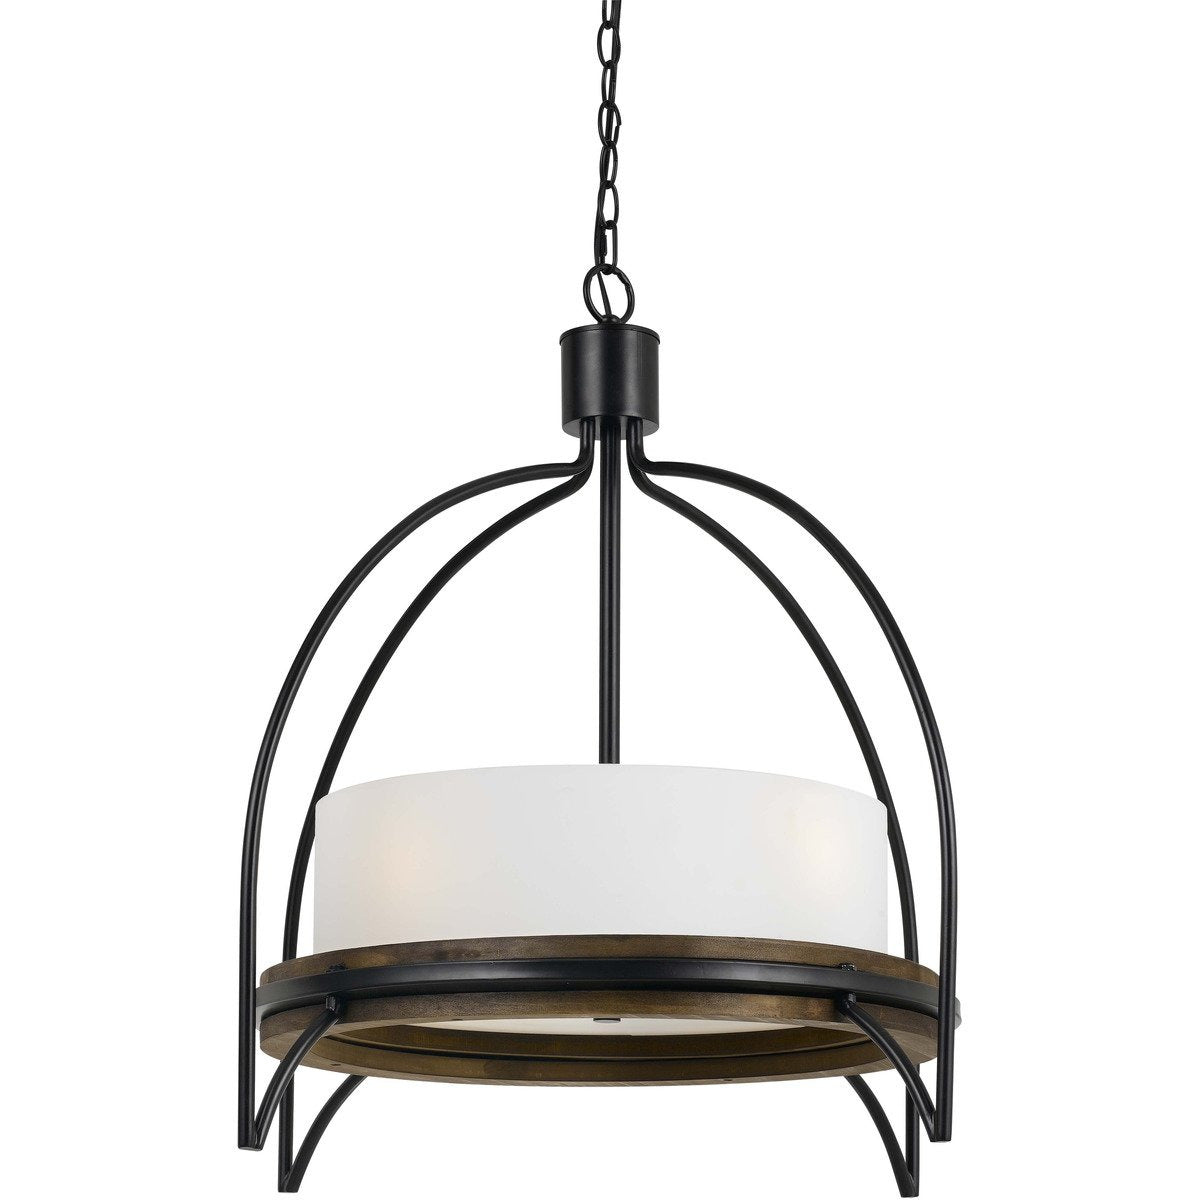 Chandeliers & Pendants - 60 X 4 Watt Wood And Metal Chandelier With Fabric Shade, White And Black